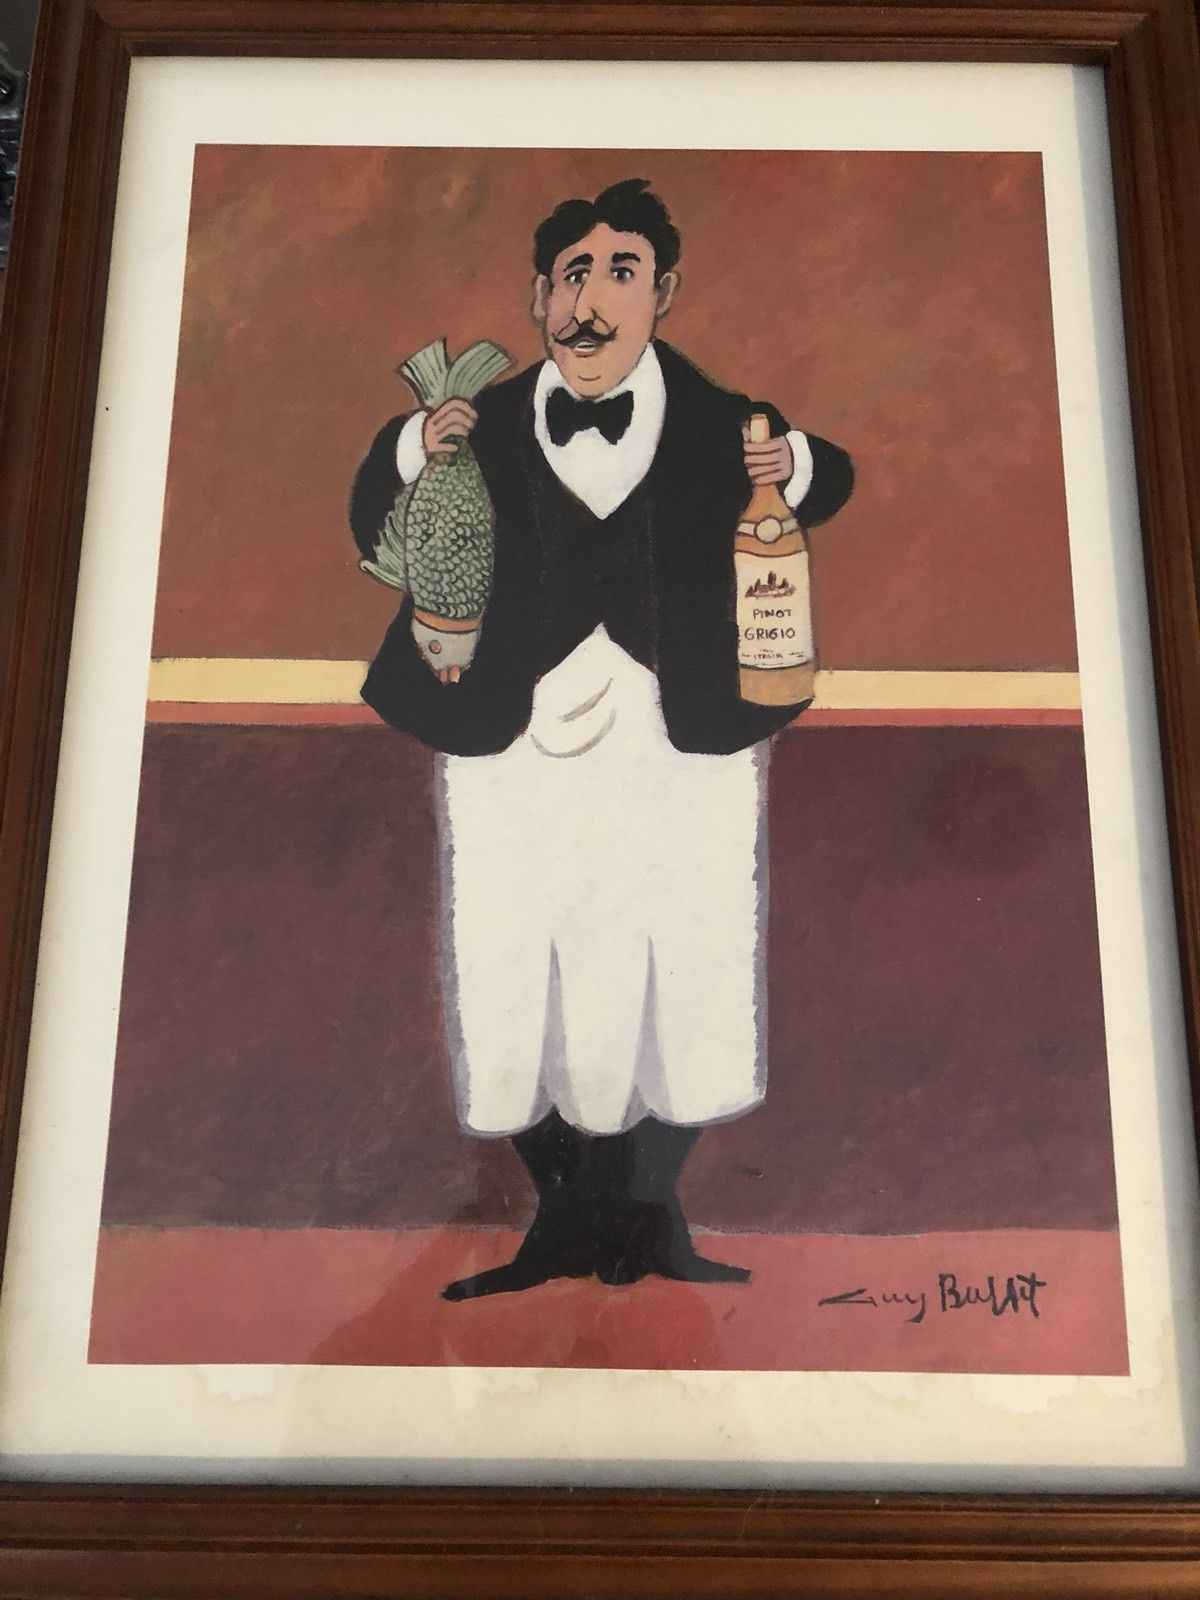 Fish and Pinot Grigio by  Guy Buffet - Masterpiece Online